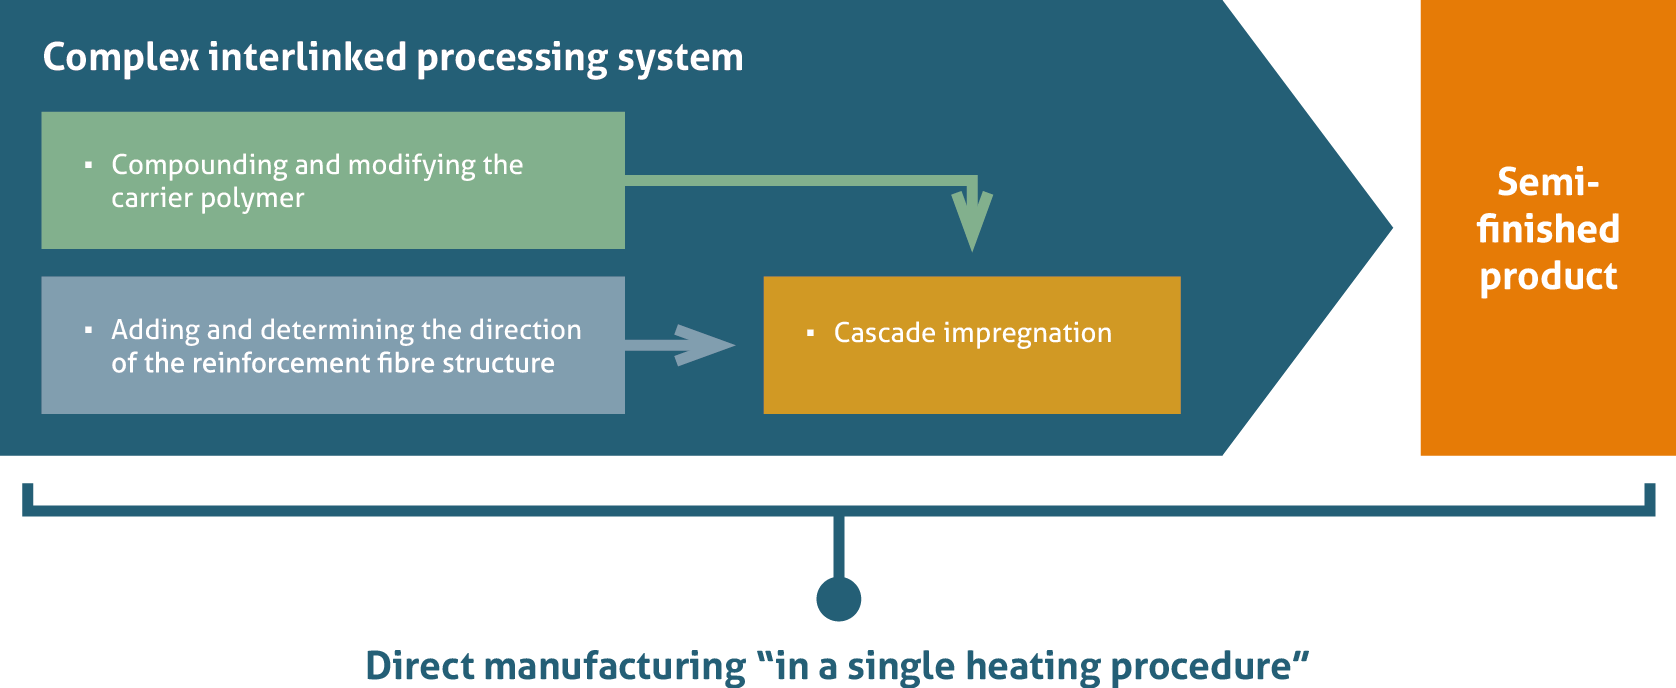 Manufacturing fibre composites with a single heating procedure